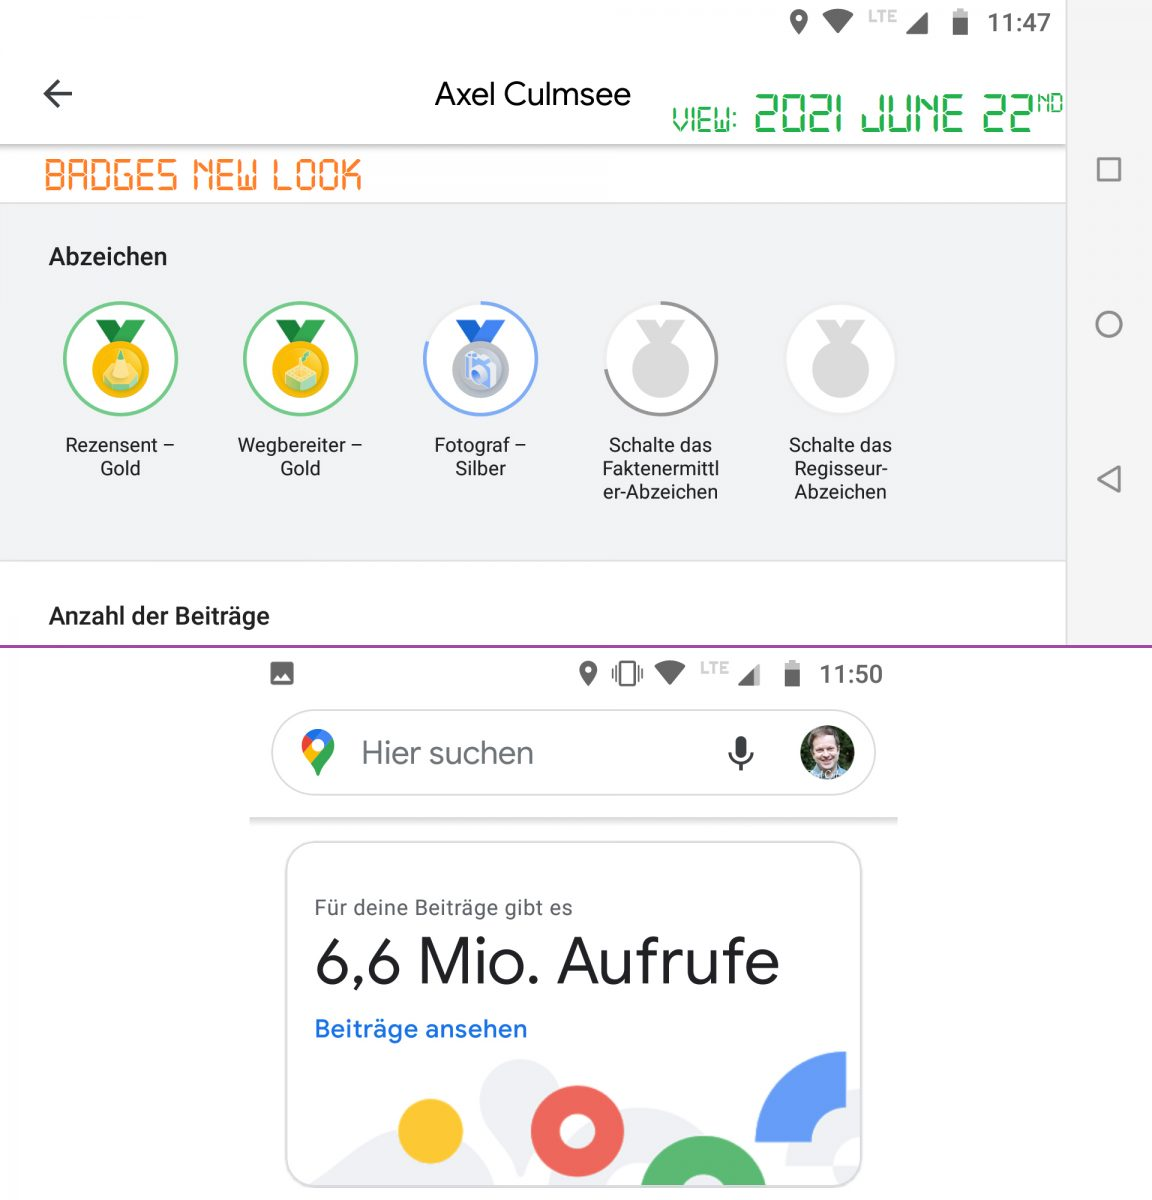 Local Guide Google Maps - badges new look June 2021 with 6,6 M views